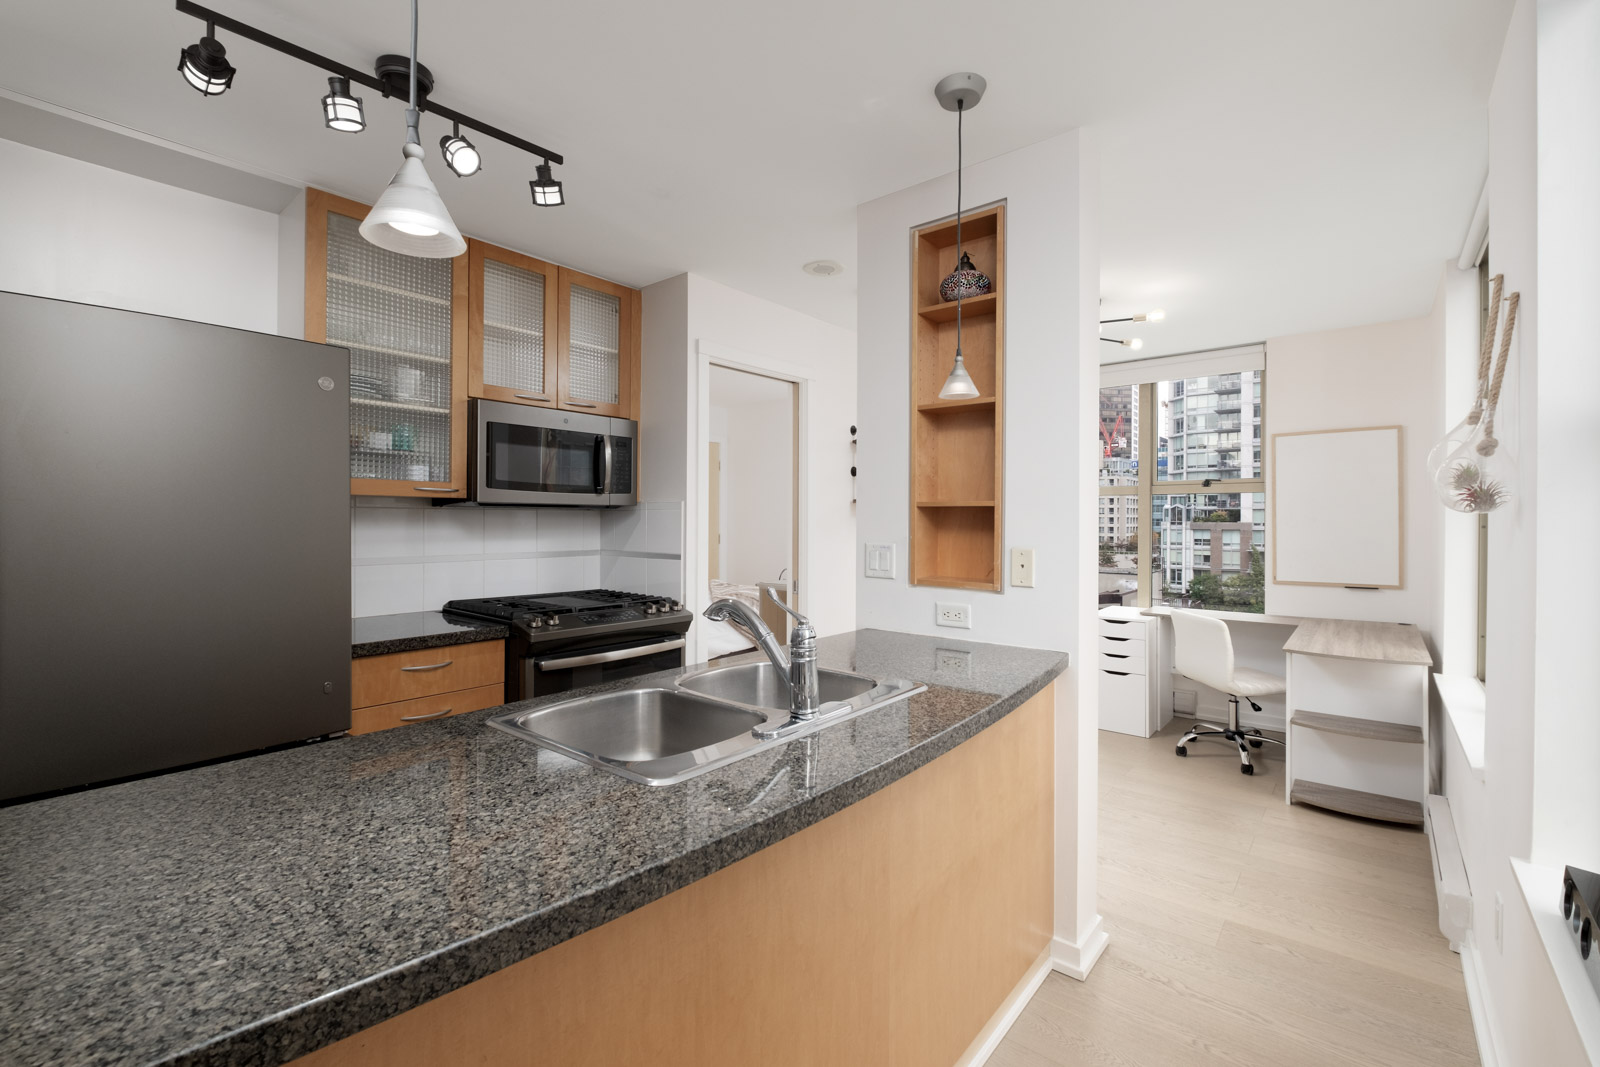 kitchen with stove fridge and island in rental condo fully furnished at mondrian 2 building in yaletown neighbourhood of downtown vancouver